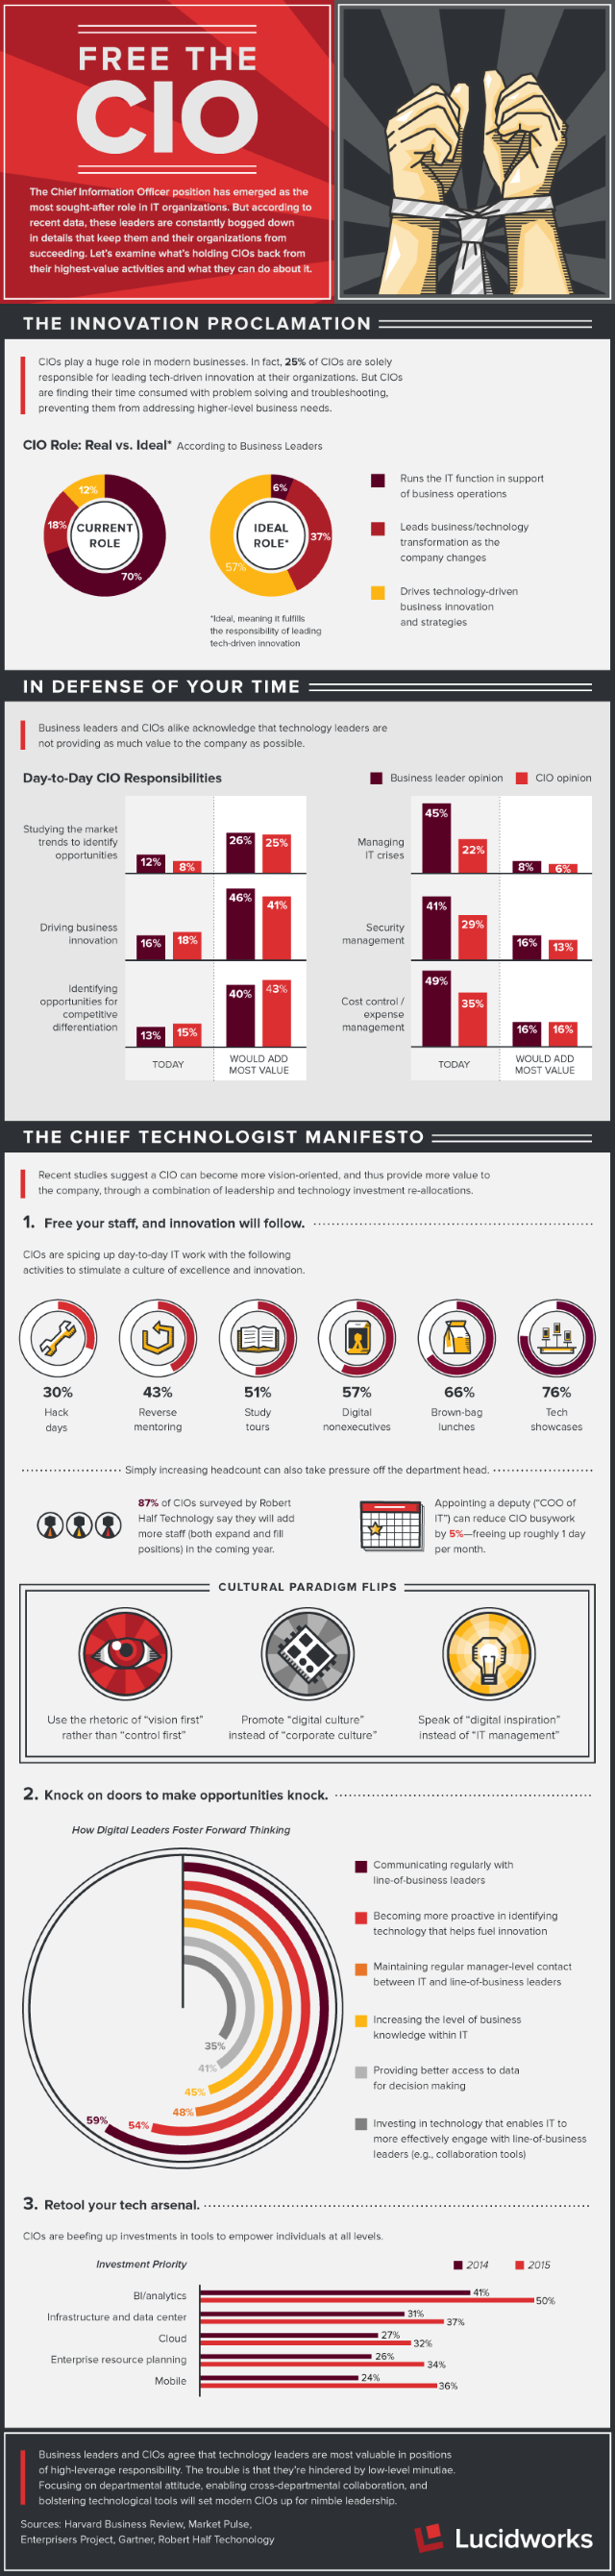 Free_The_CIO_Infographic_Lucidworks